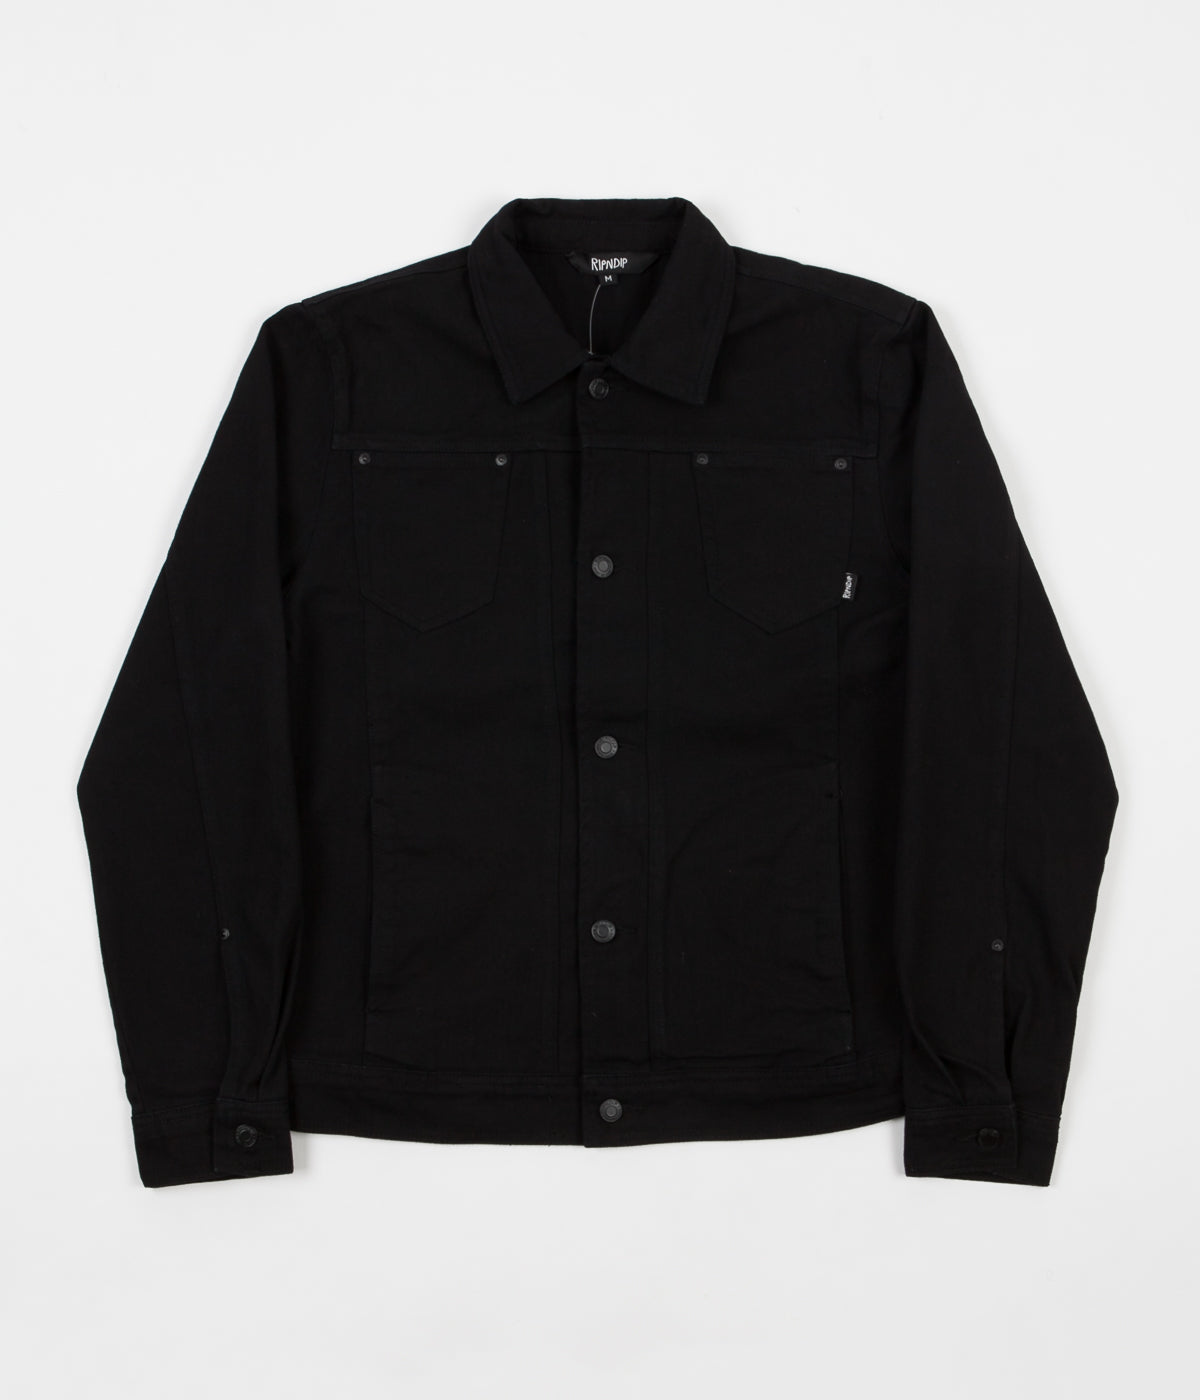 Rip N Dip Nermcasso Flower Denim Jacket - Black